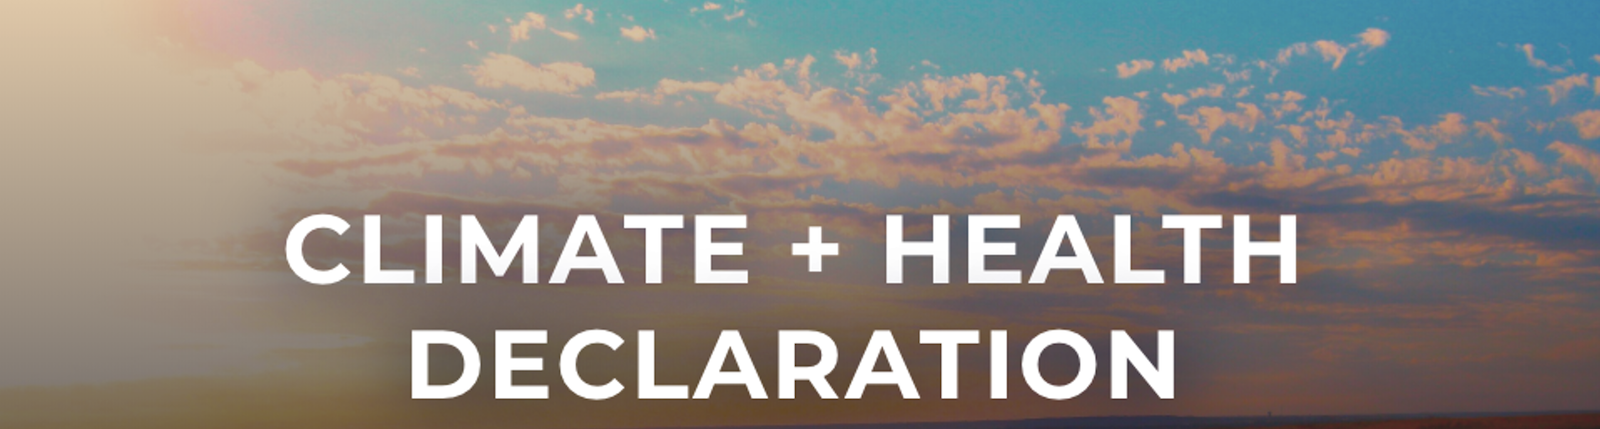 Support the Kansas Climate + Health Declaration image